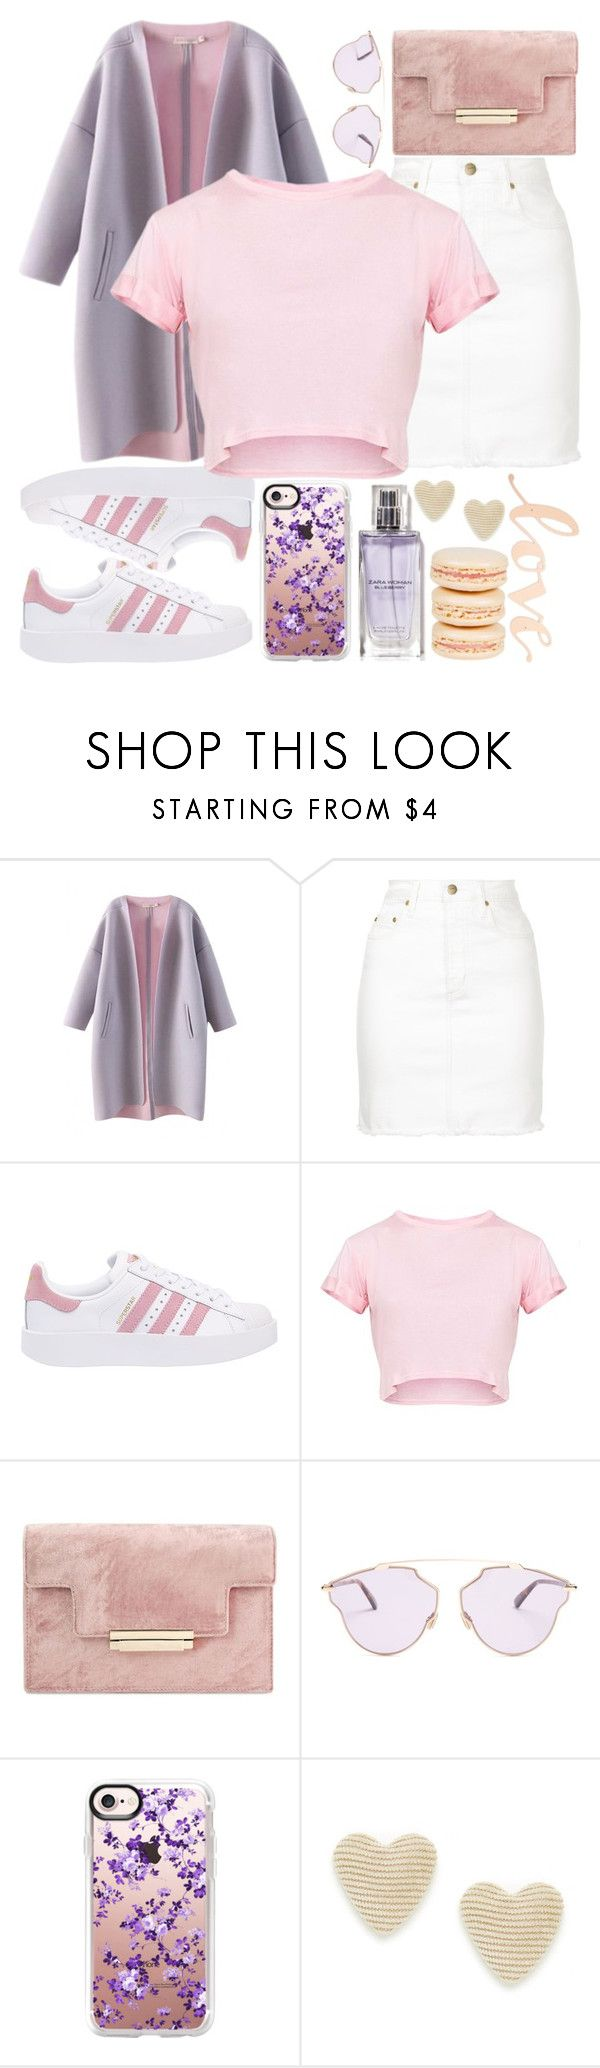 """""""Untitled #52"""" by zalvaalf ❤ liked on Polyvore featuring Nobody Denim, adidas Originals, Christian Dior, Casetify, Mikimoto and Primitives By Kathy"""